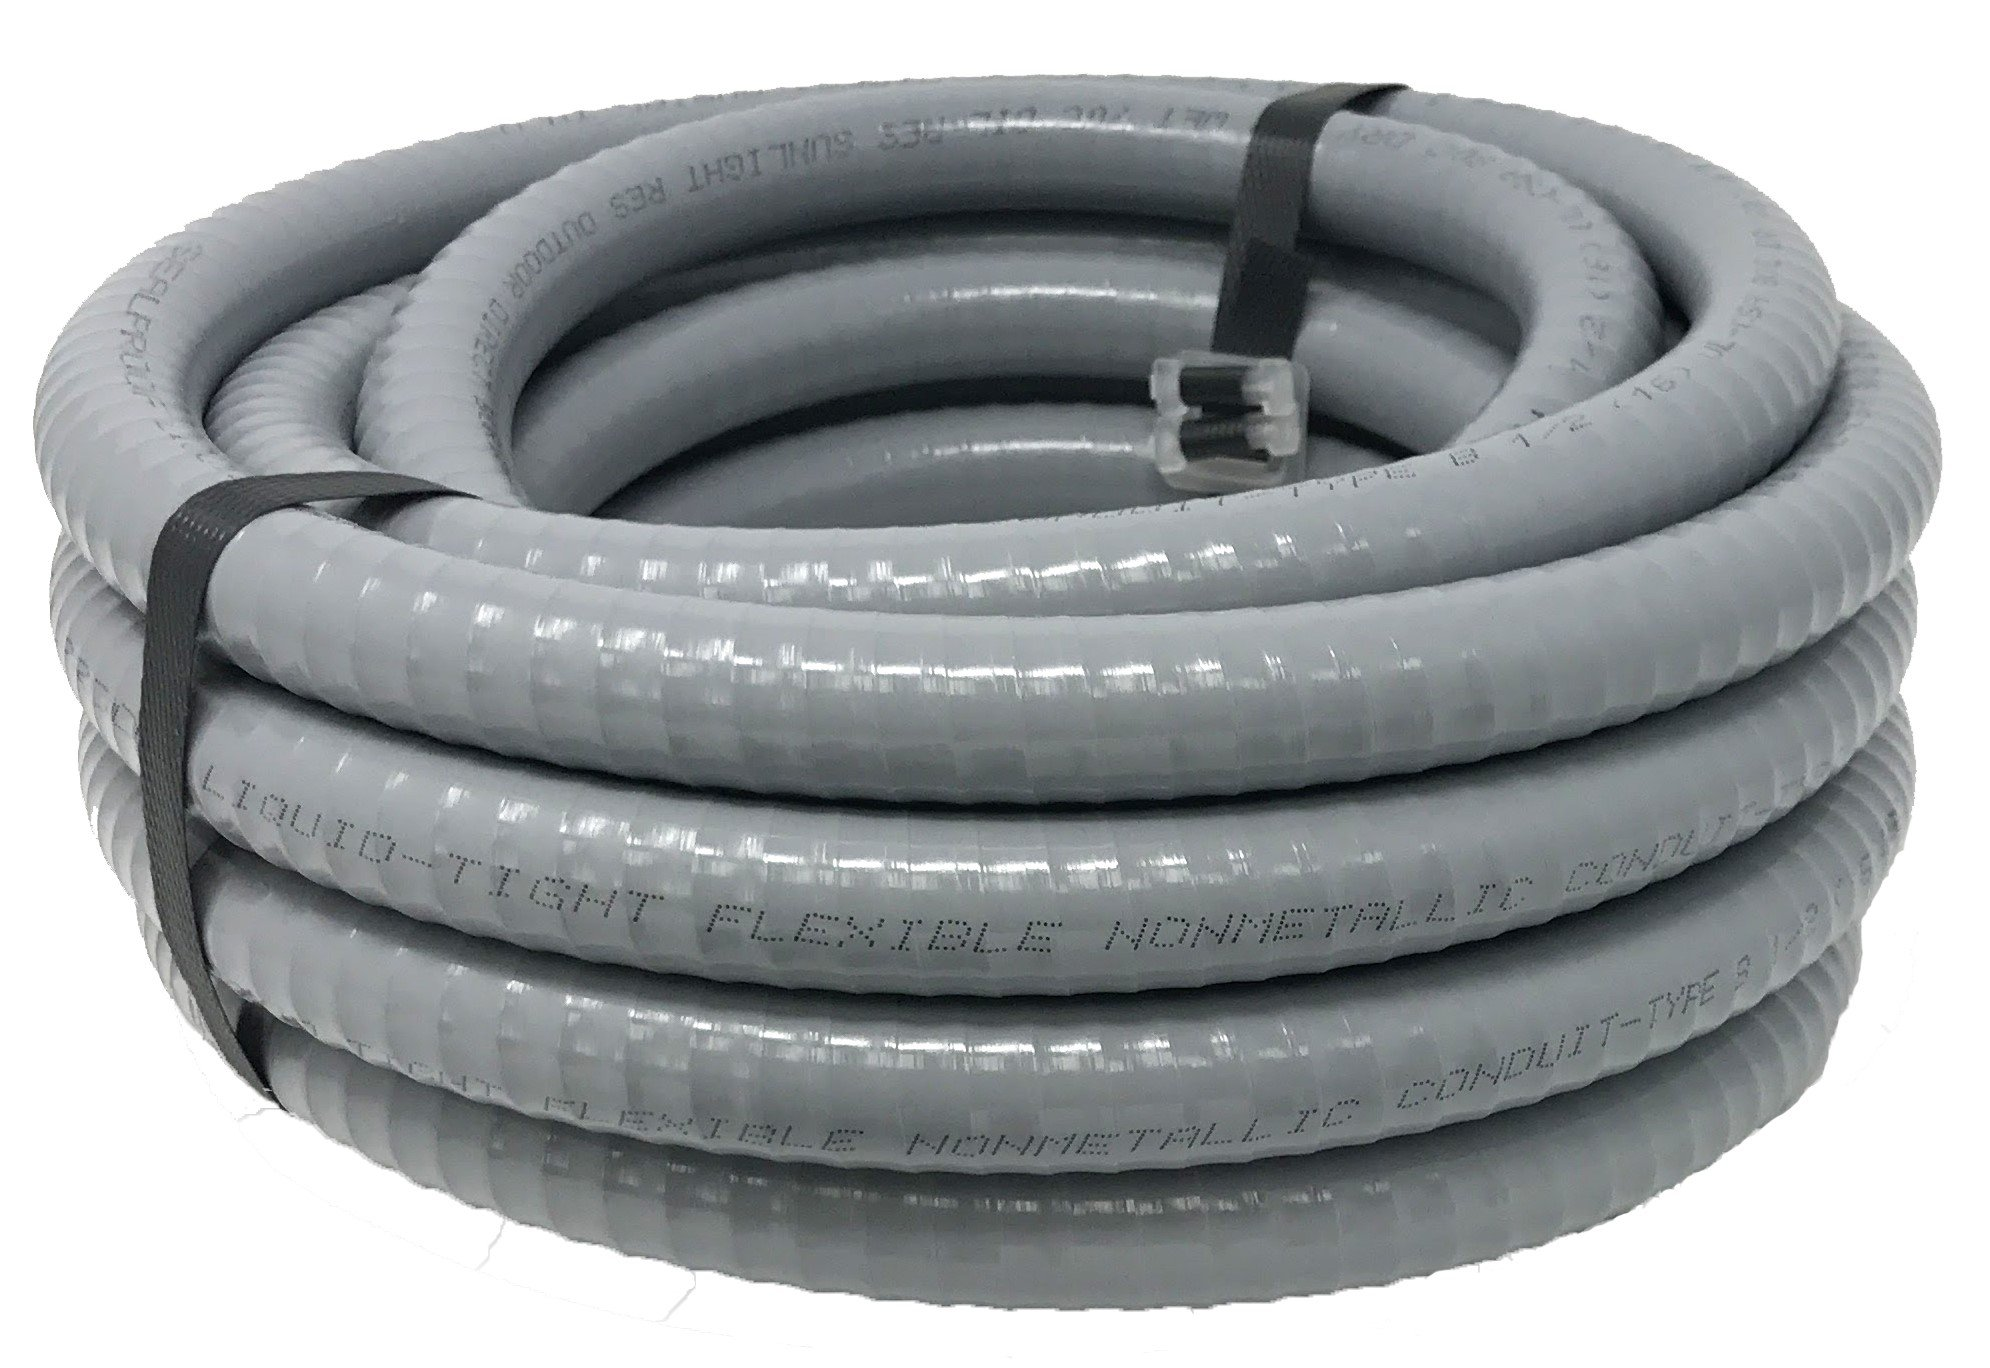 Sealproof 1/2-Inch Flexible Nonmetallic Liquid-Tight Electrical Conduit Type B, UL Listed, 1/2'' Dia, 25 Feet